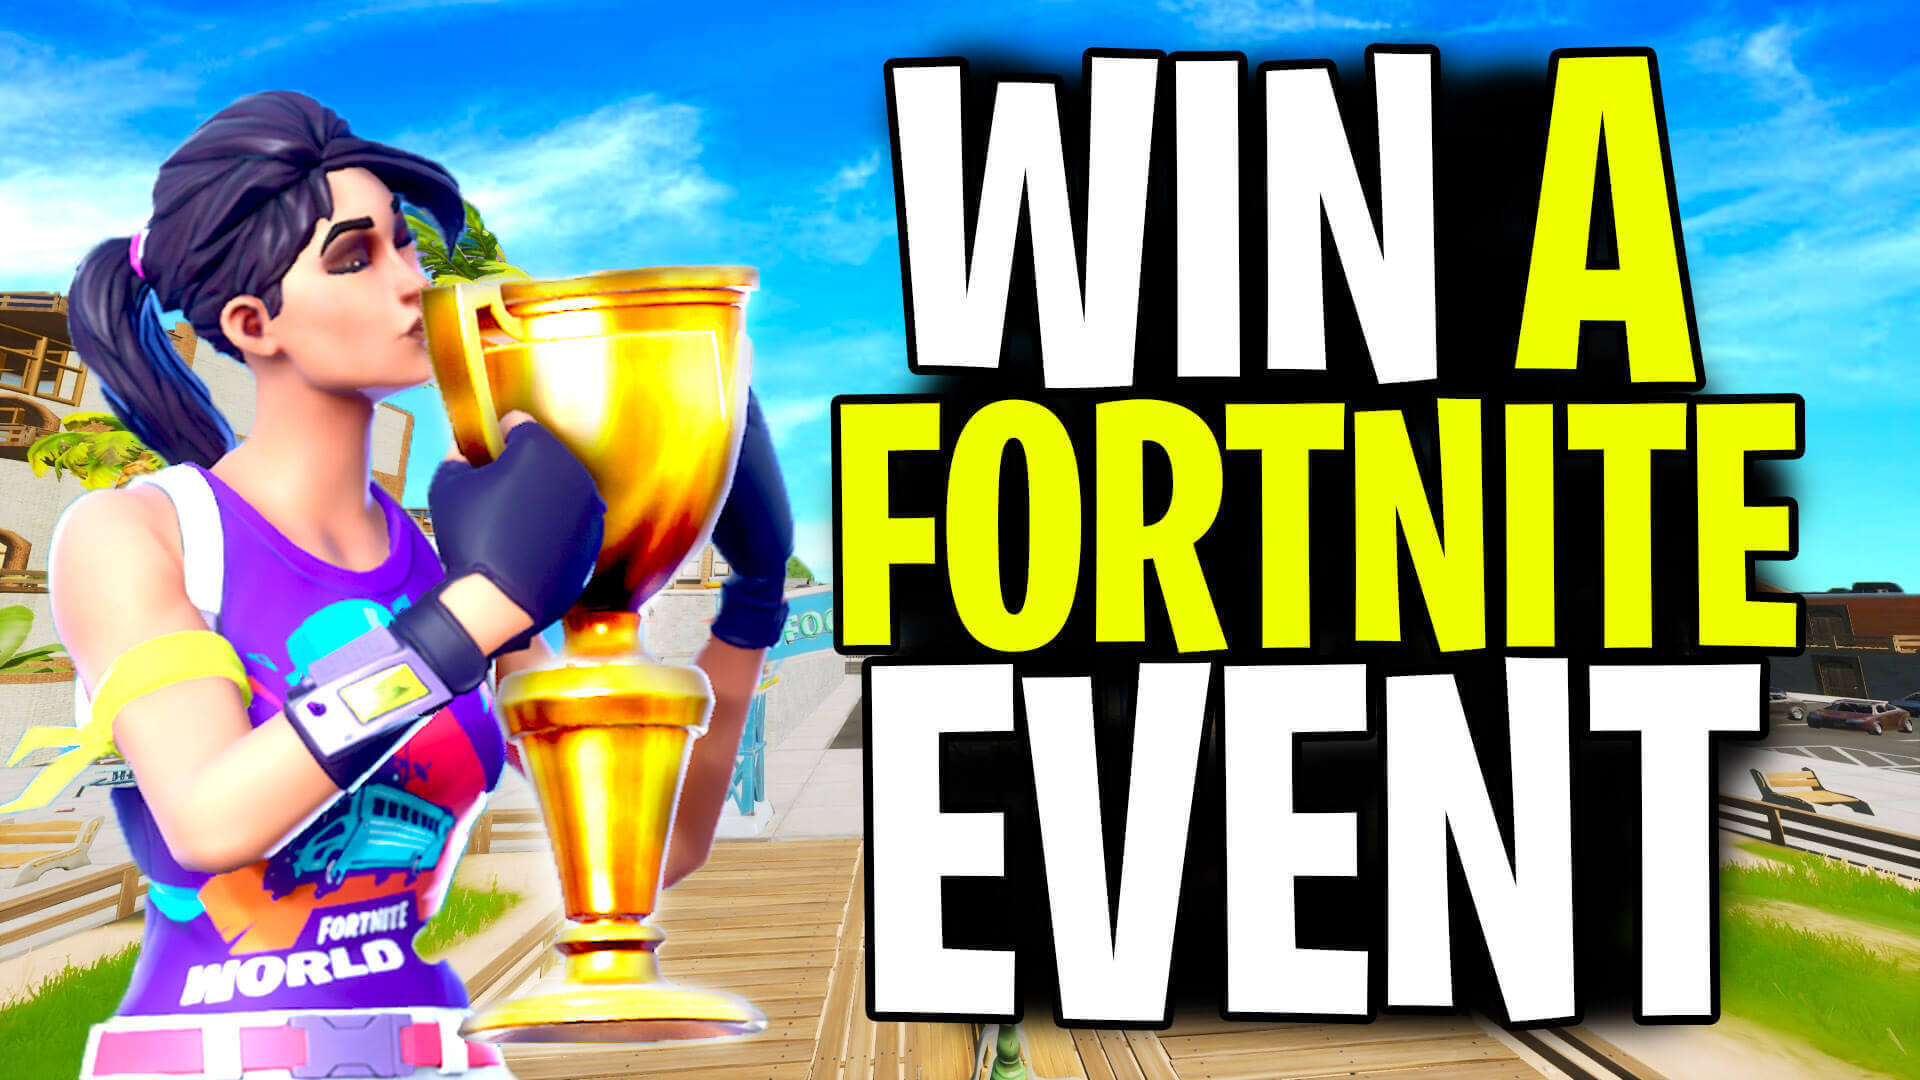 Win your first Fortnite tournament using these helpful tips!